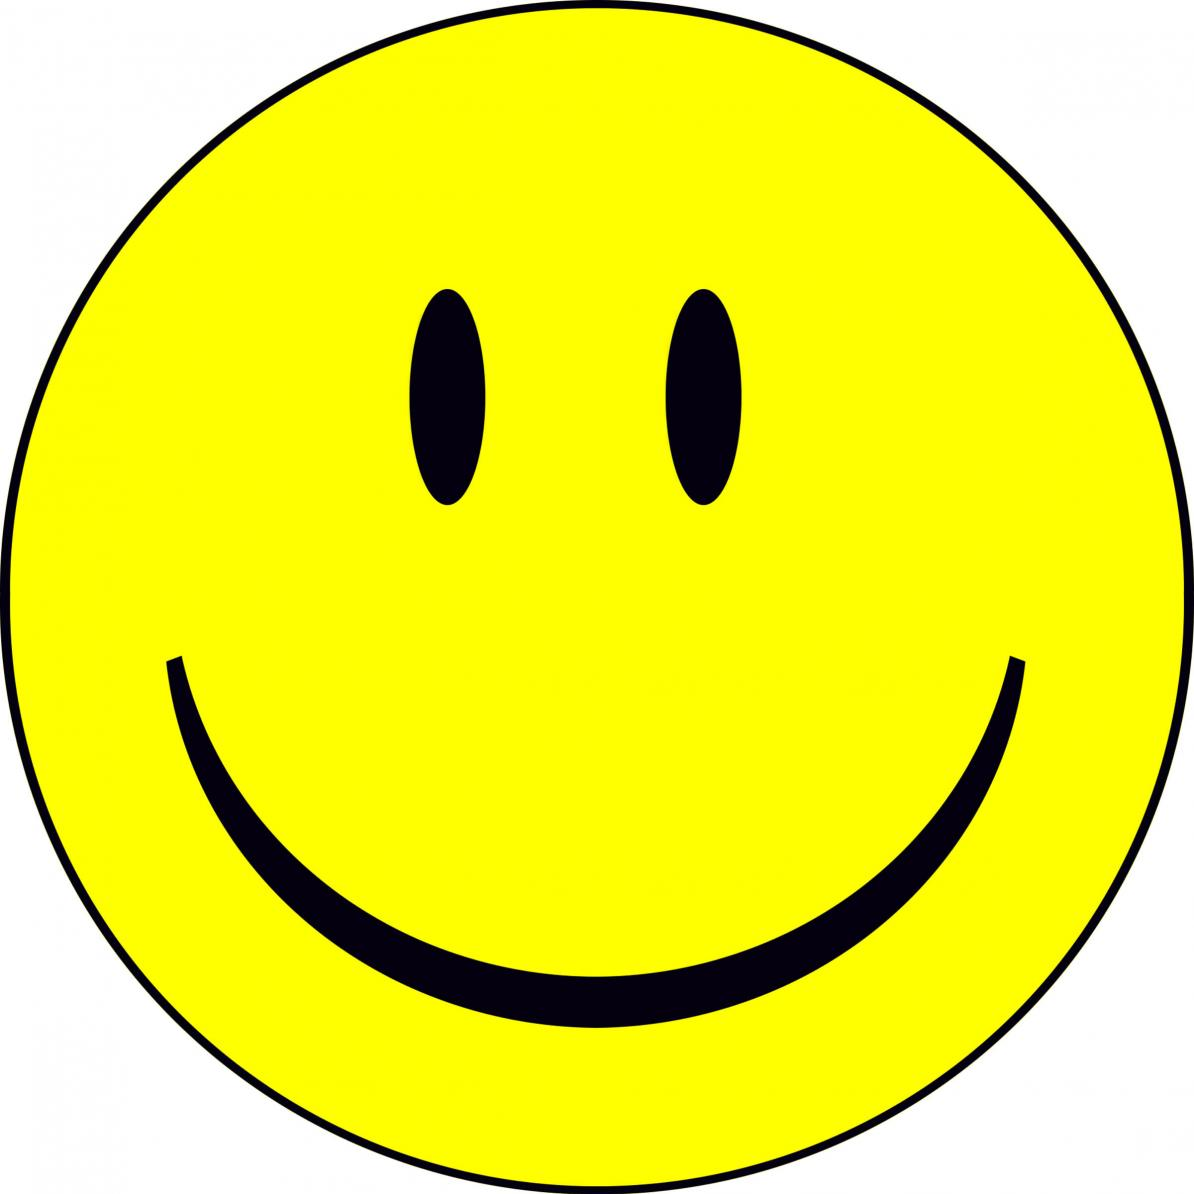 Smiling clipart images image stock Free Smiling Heart Clipart, Download Free Clip Art, Free ... image stock